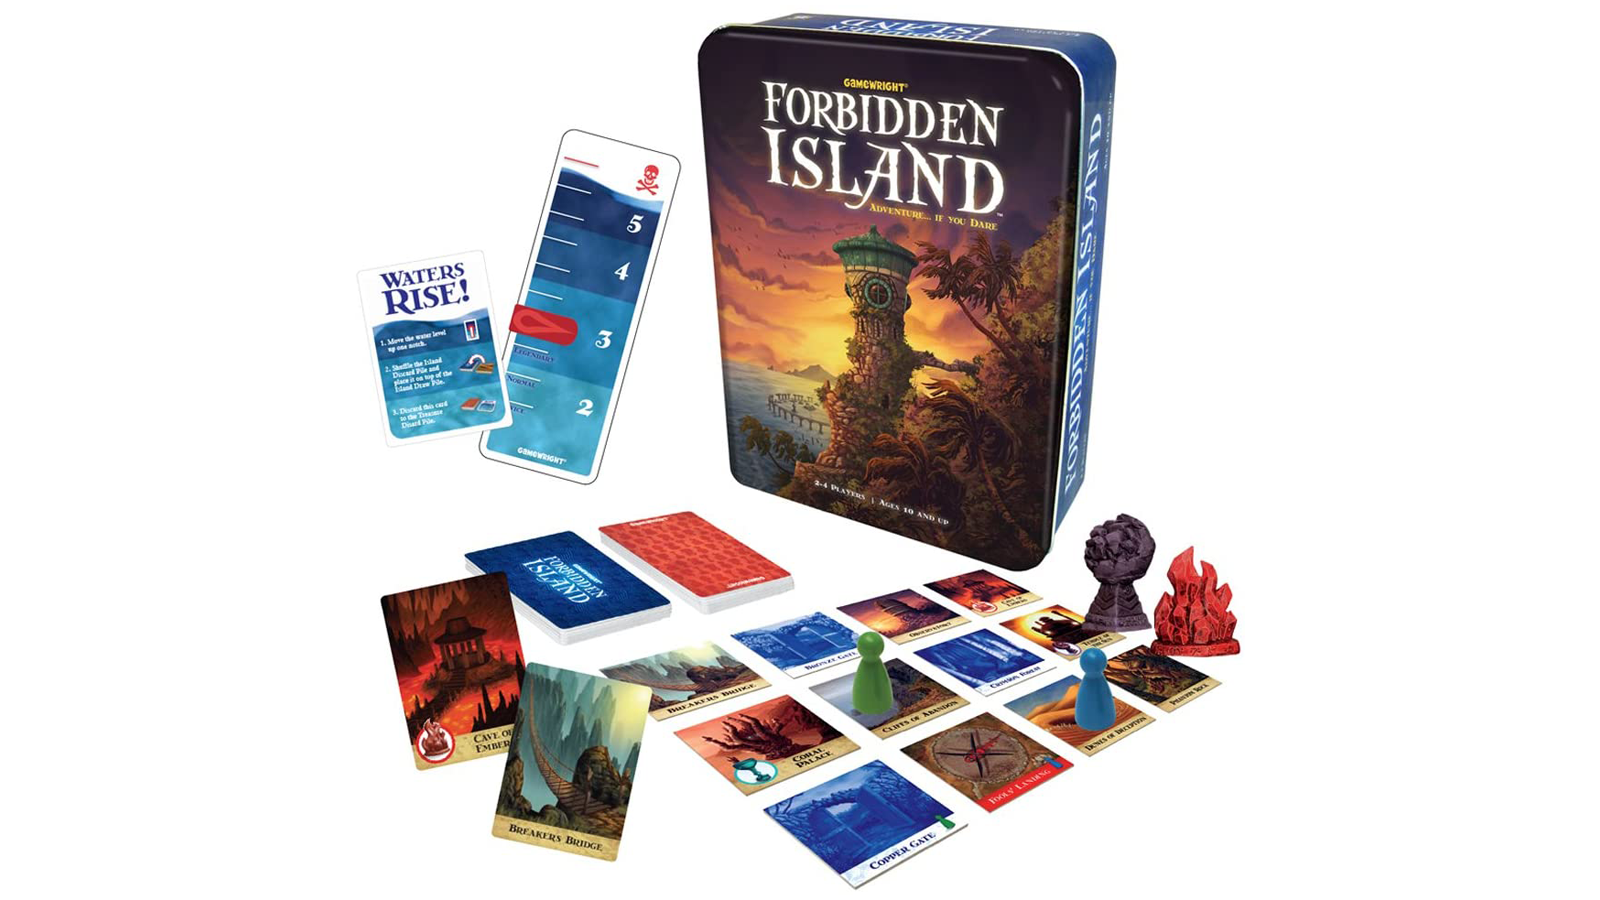 Forbidden Island game box and components